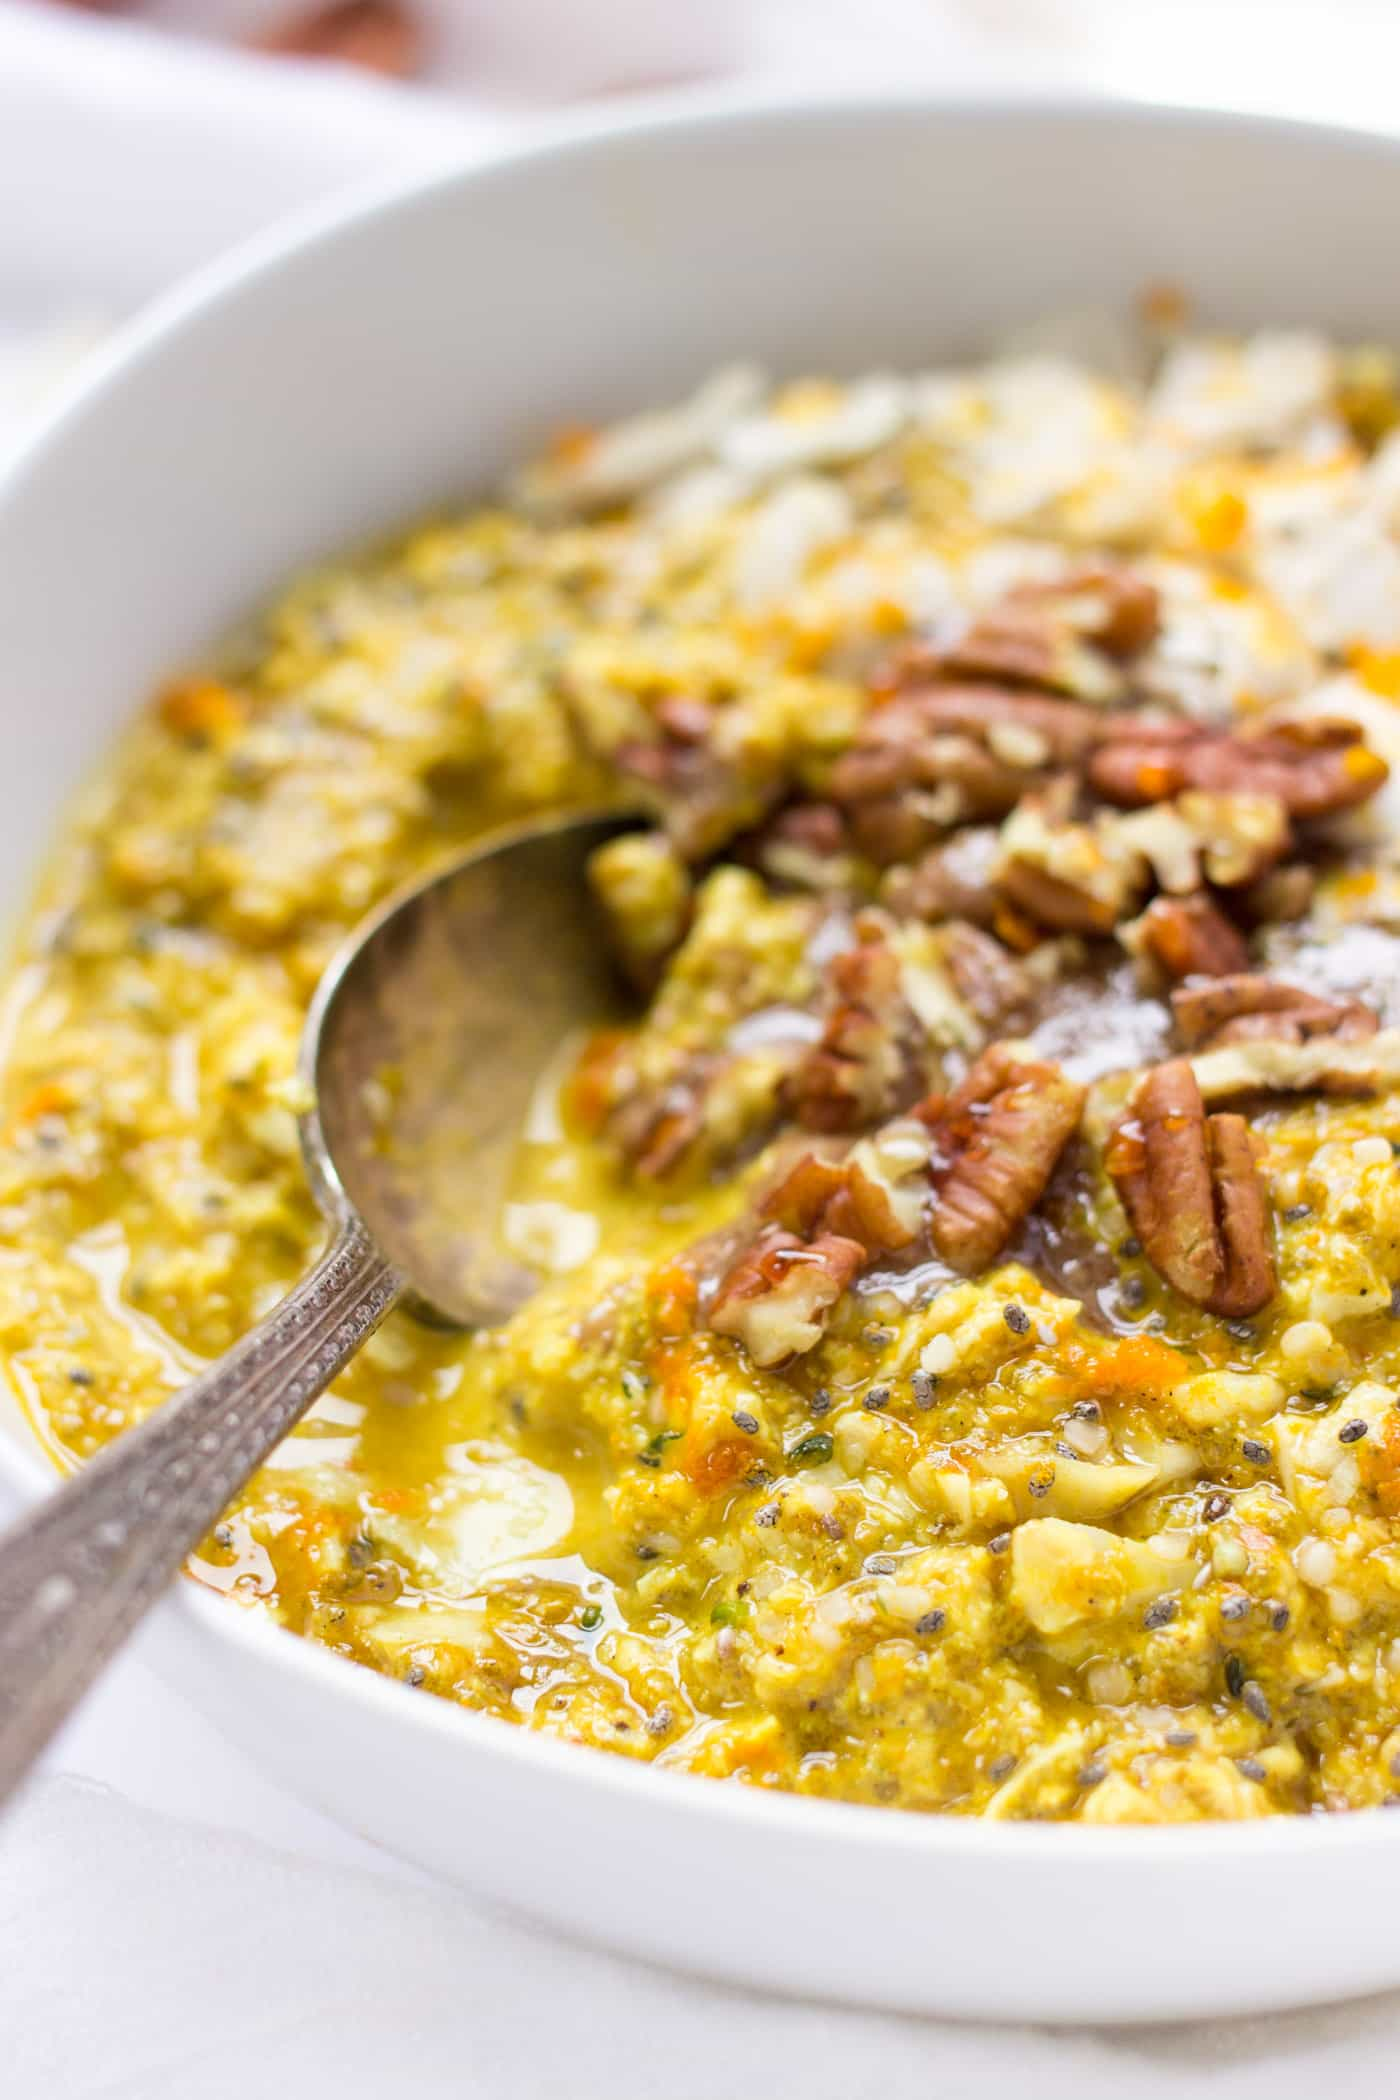 The perfect overnight quinoa recipe >> with orange and turmeric to boost flavor and help fight inflammation!